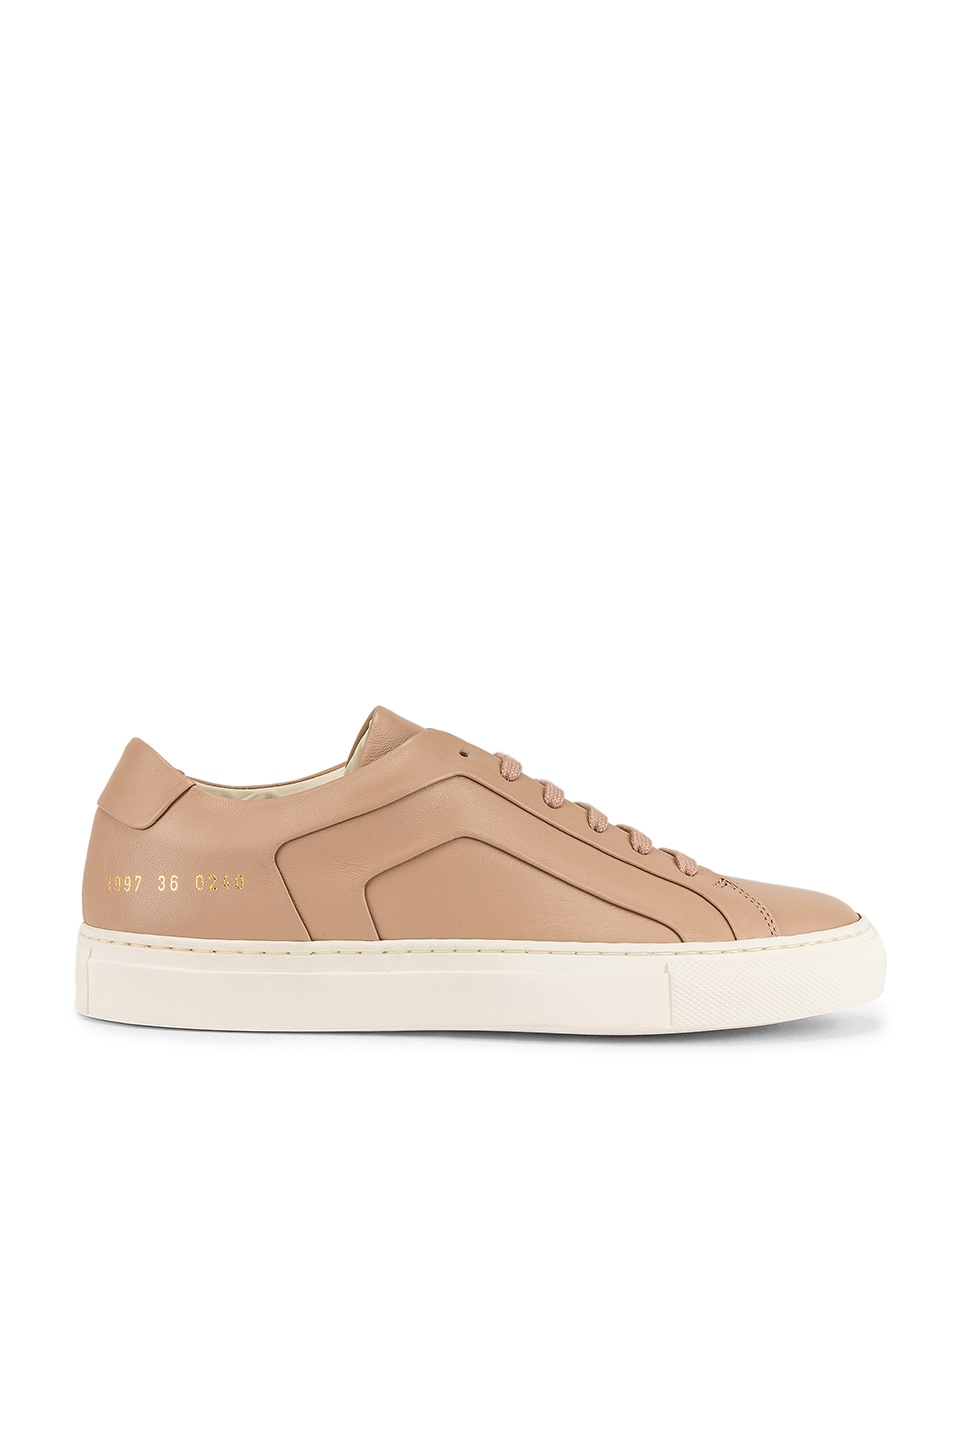 Common Projects Achilles Multiply Sneaker in Taupe